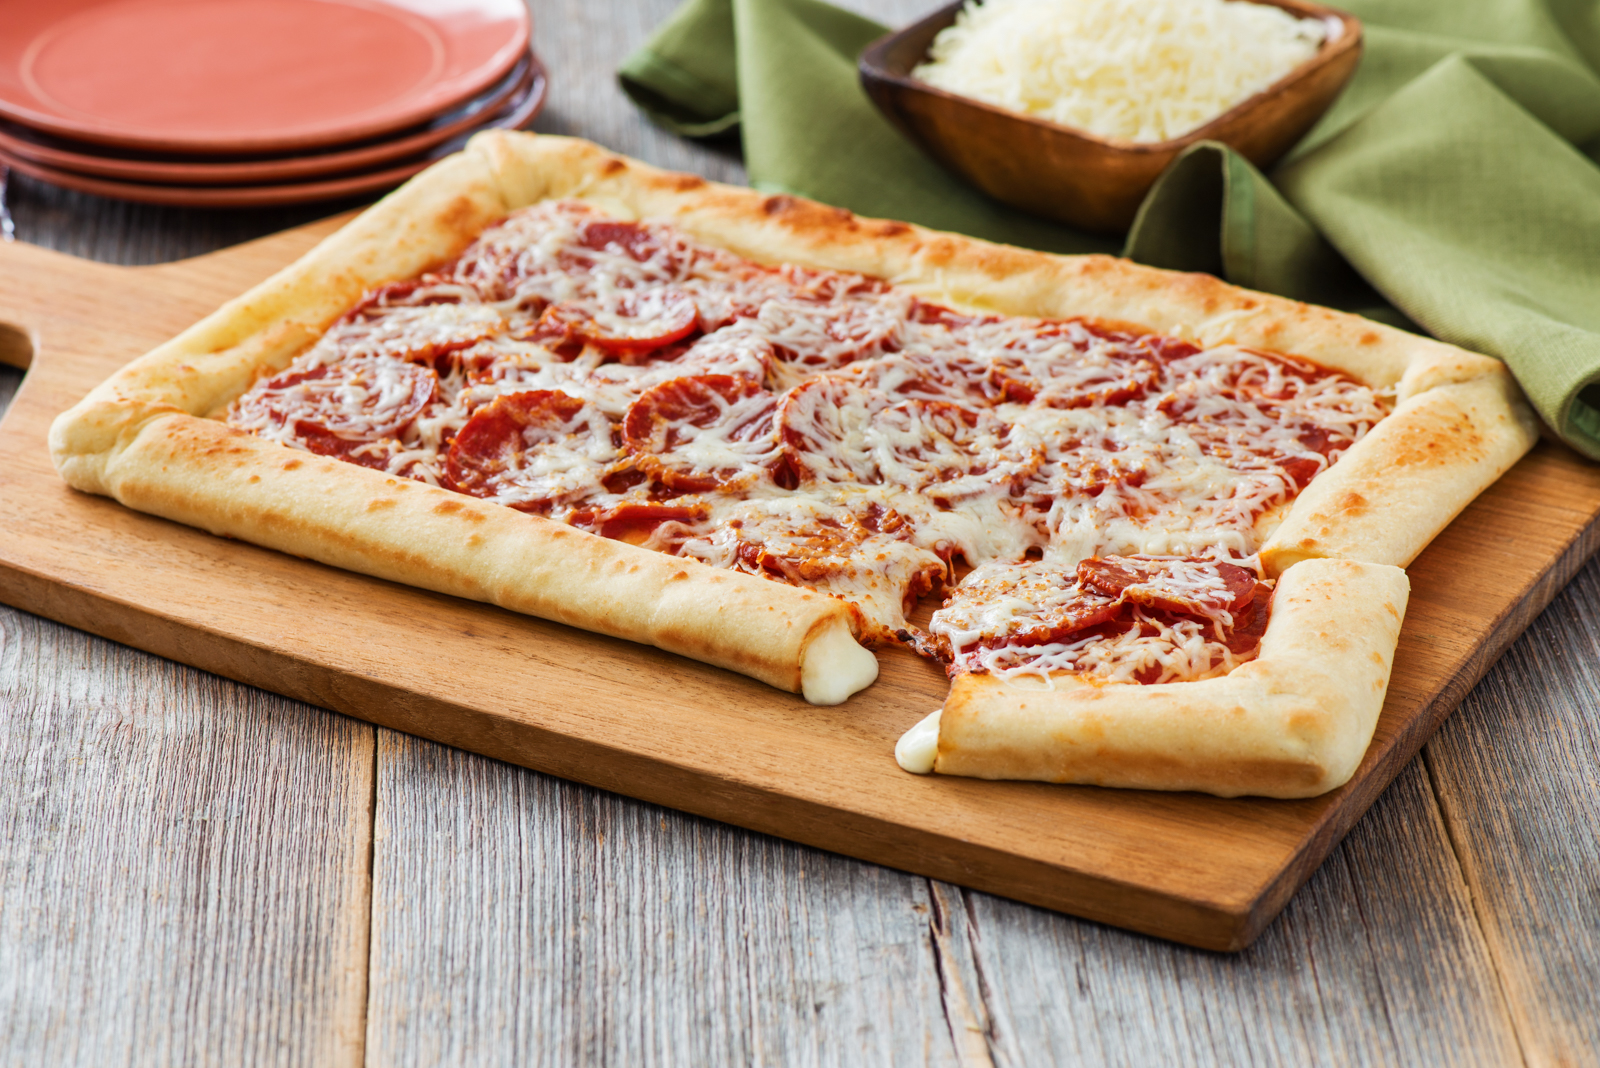 Stuffed Crust Pizza Recipe | Sargento® Shredded 6 Cheese ... Stuffed Crust Pizza